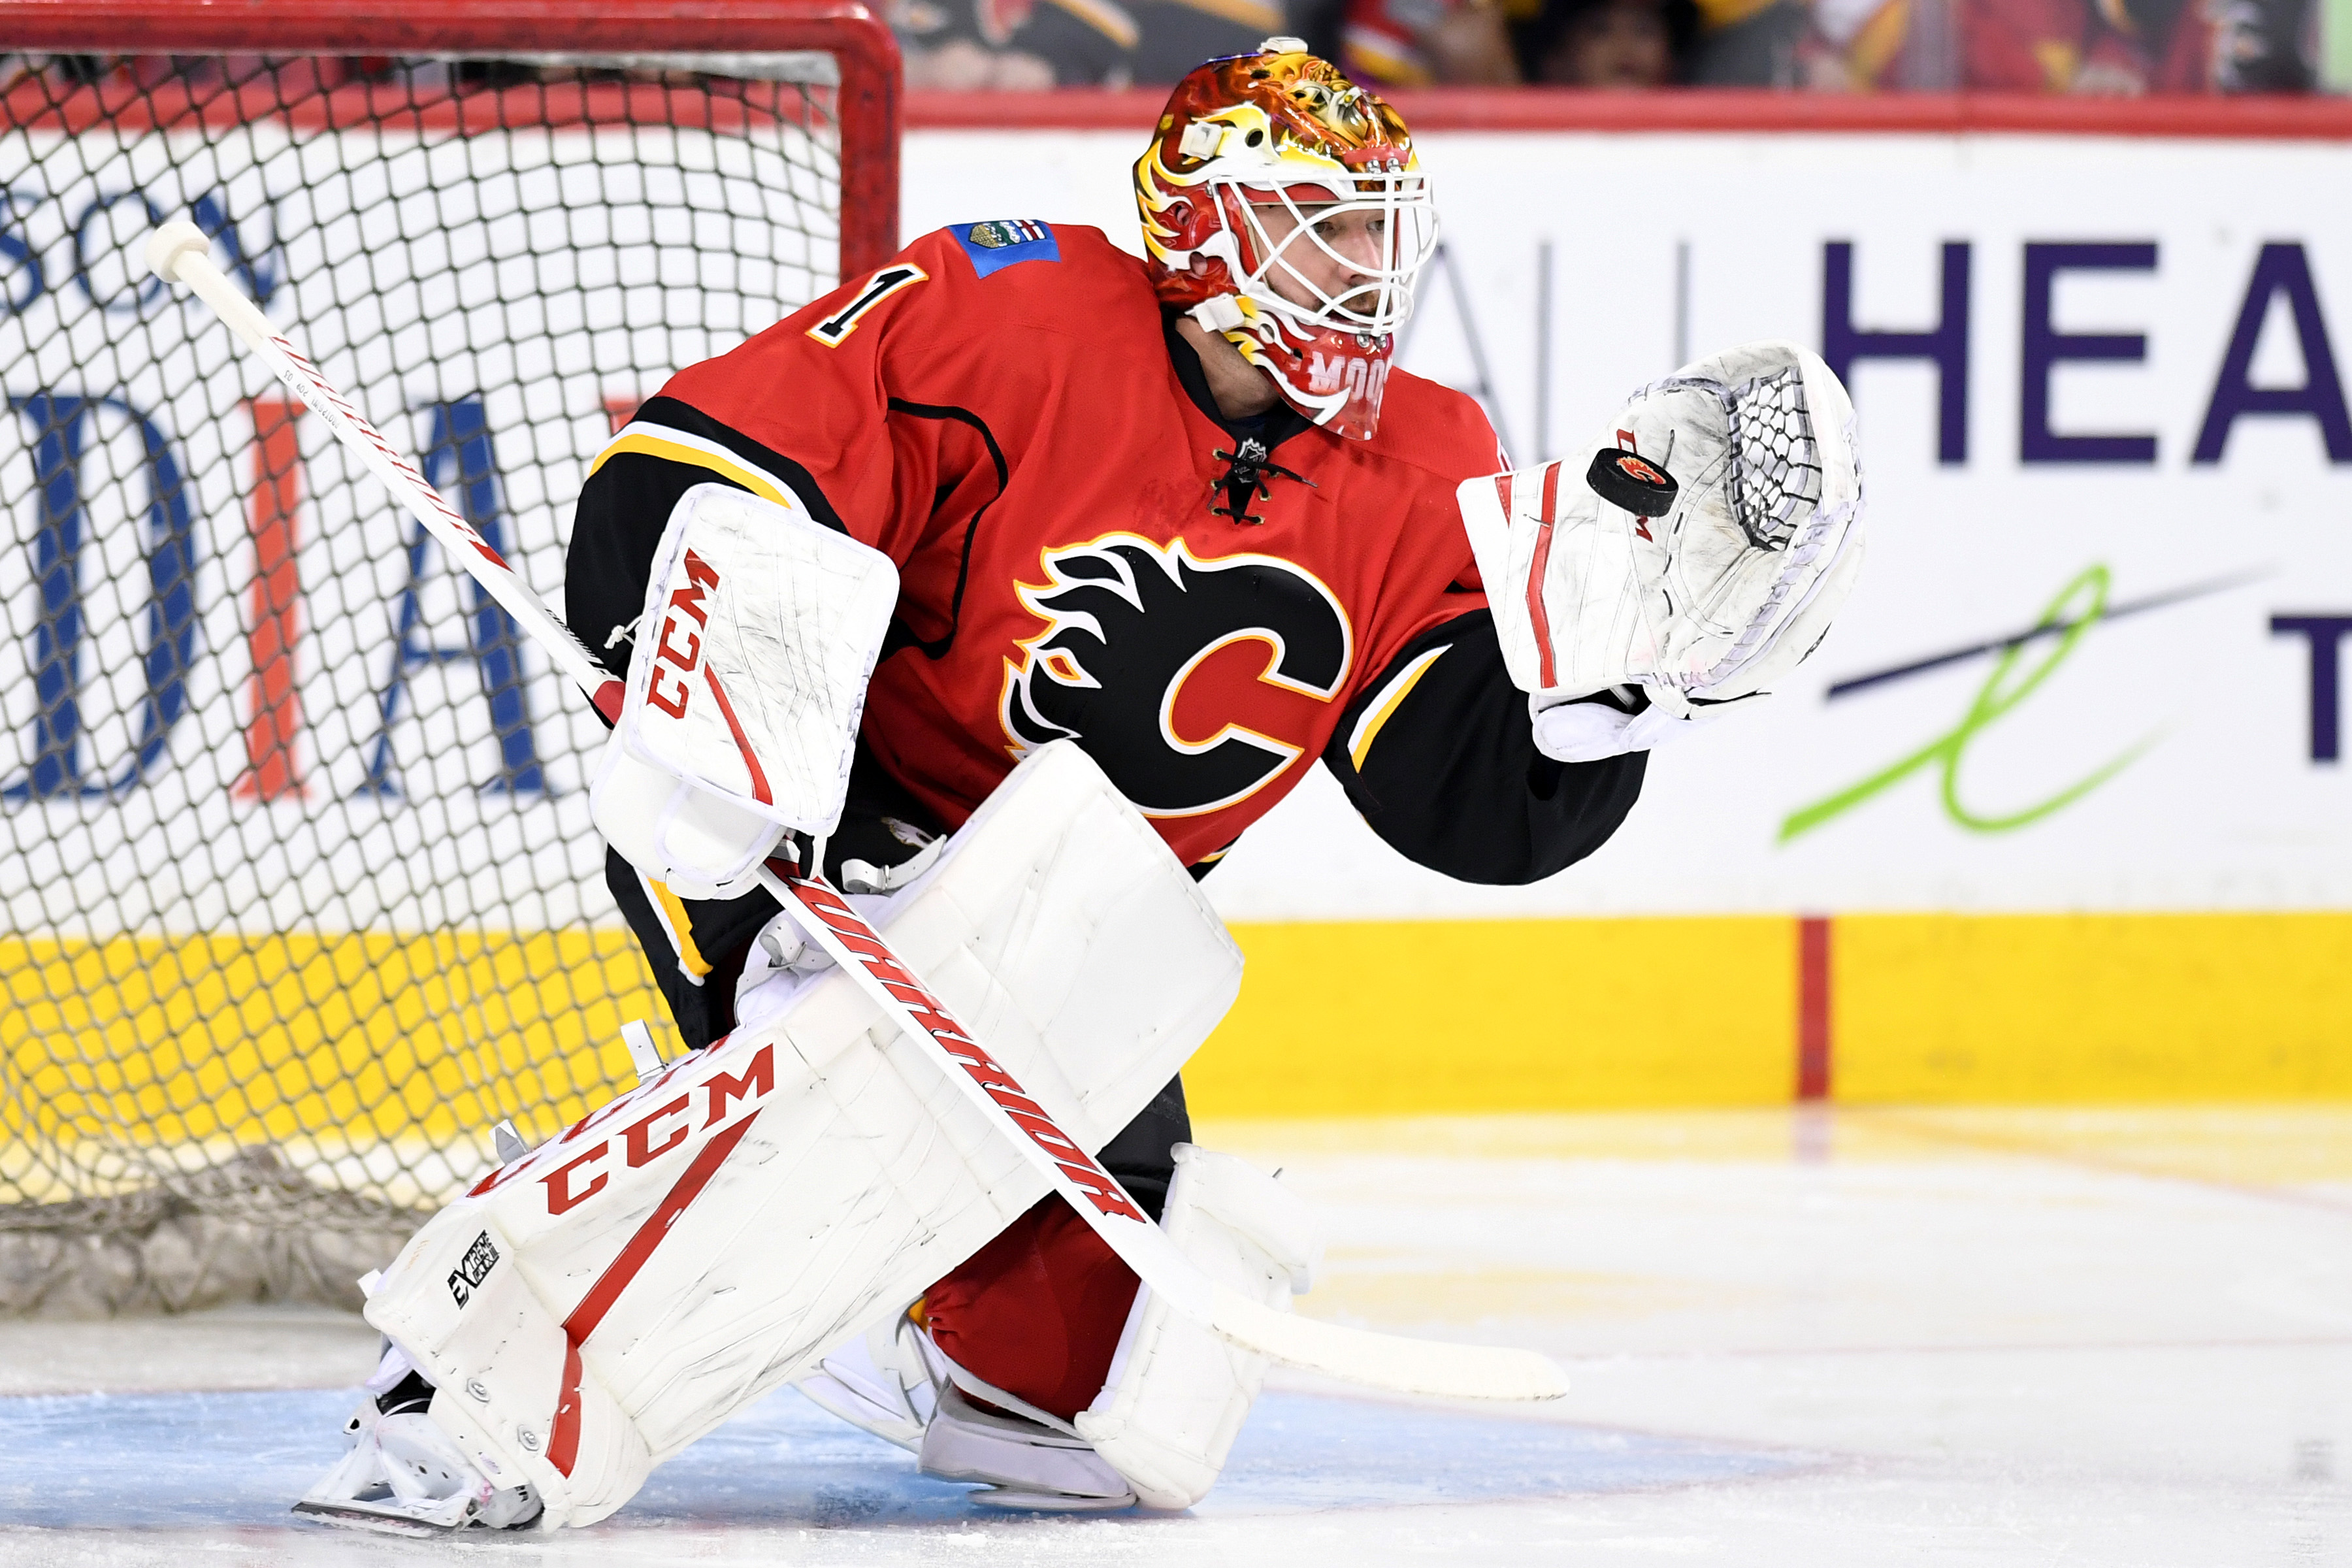 10020715-nhl-stanley-cup-playoffs-anaheim-ducks-at-calgary-flames